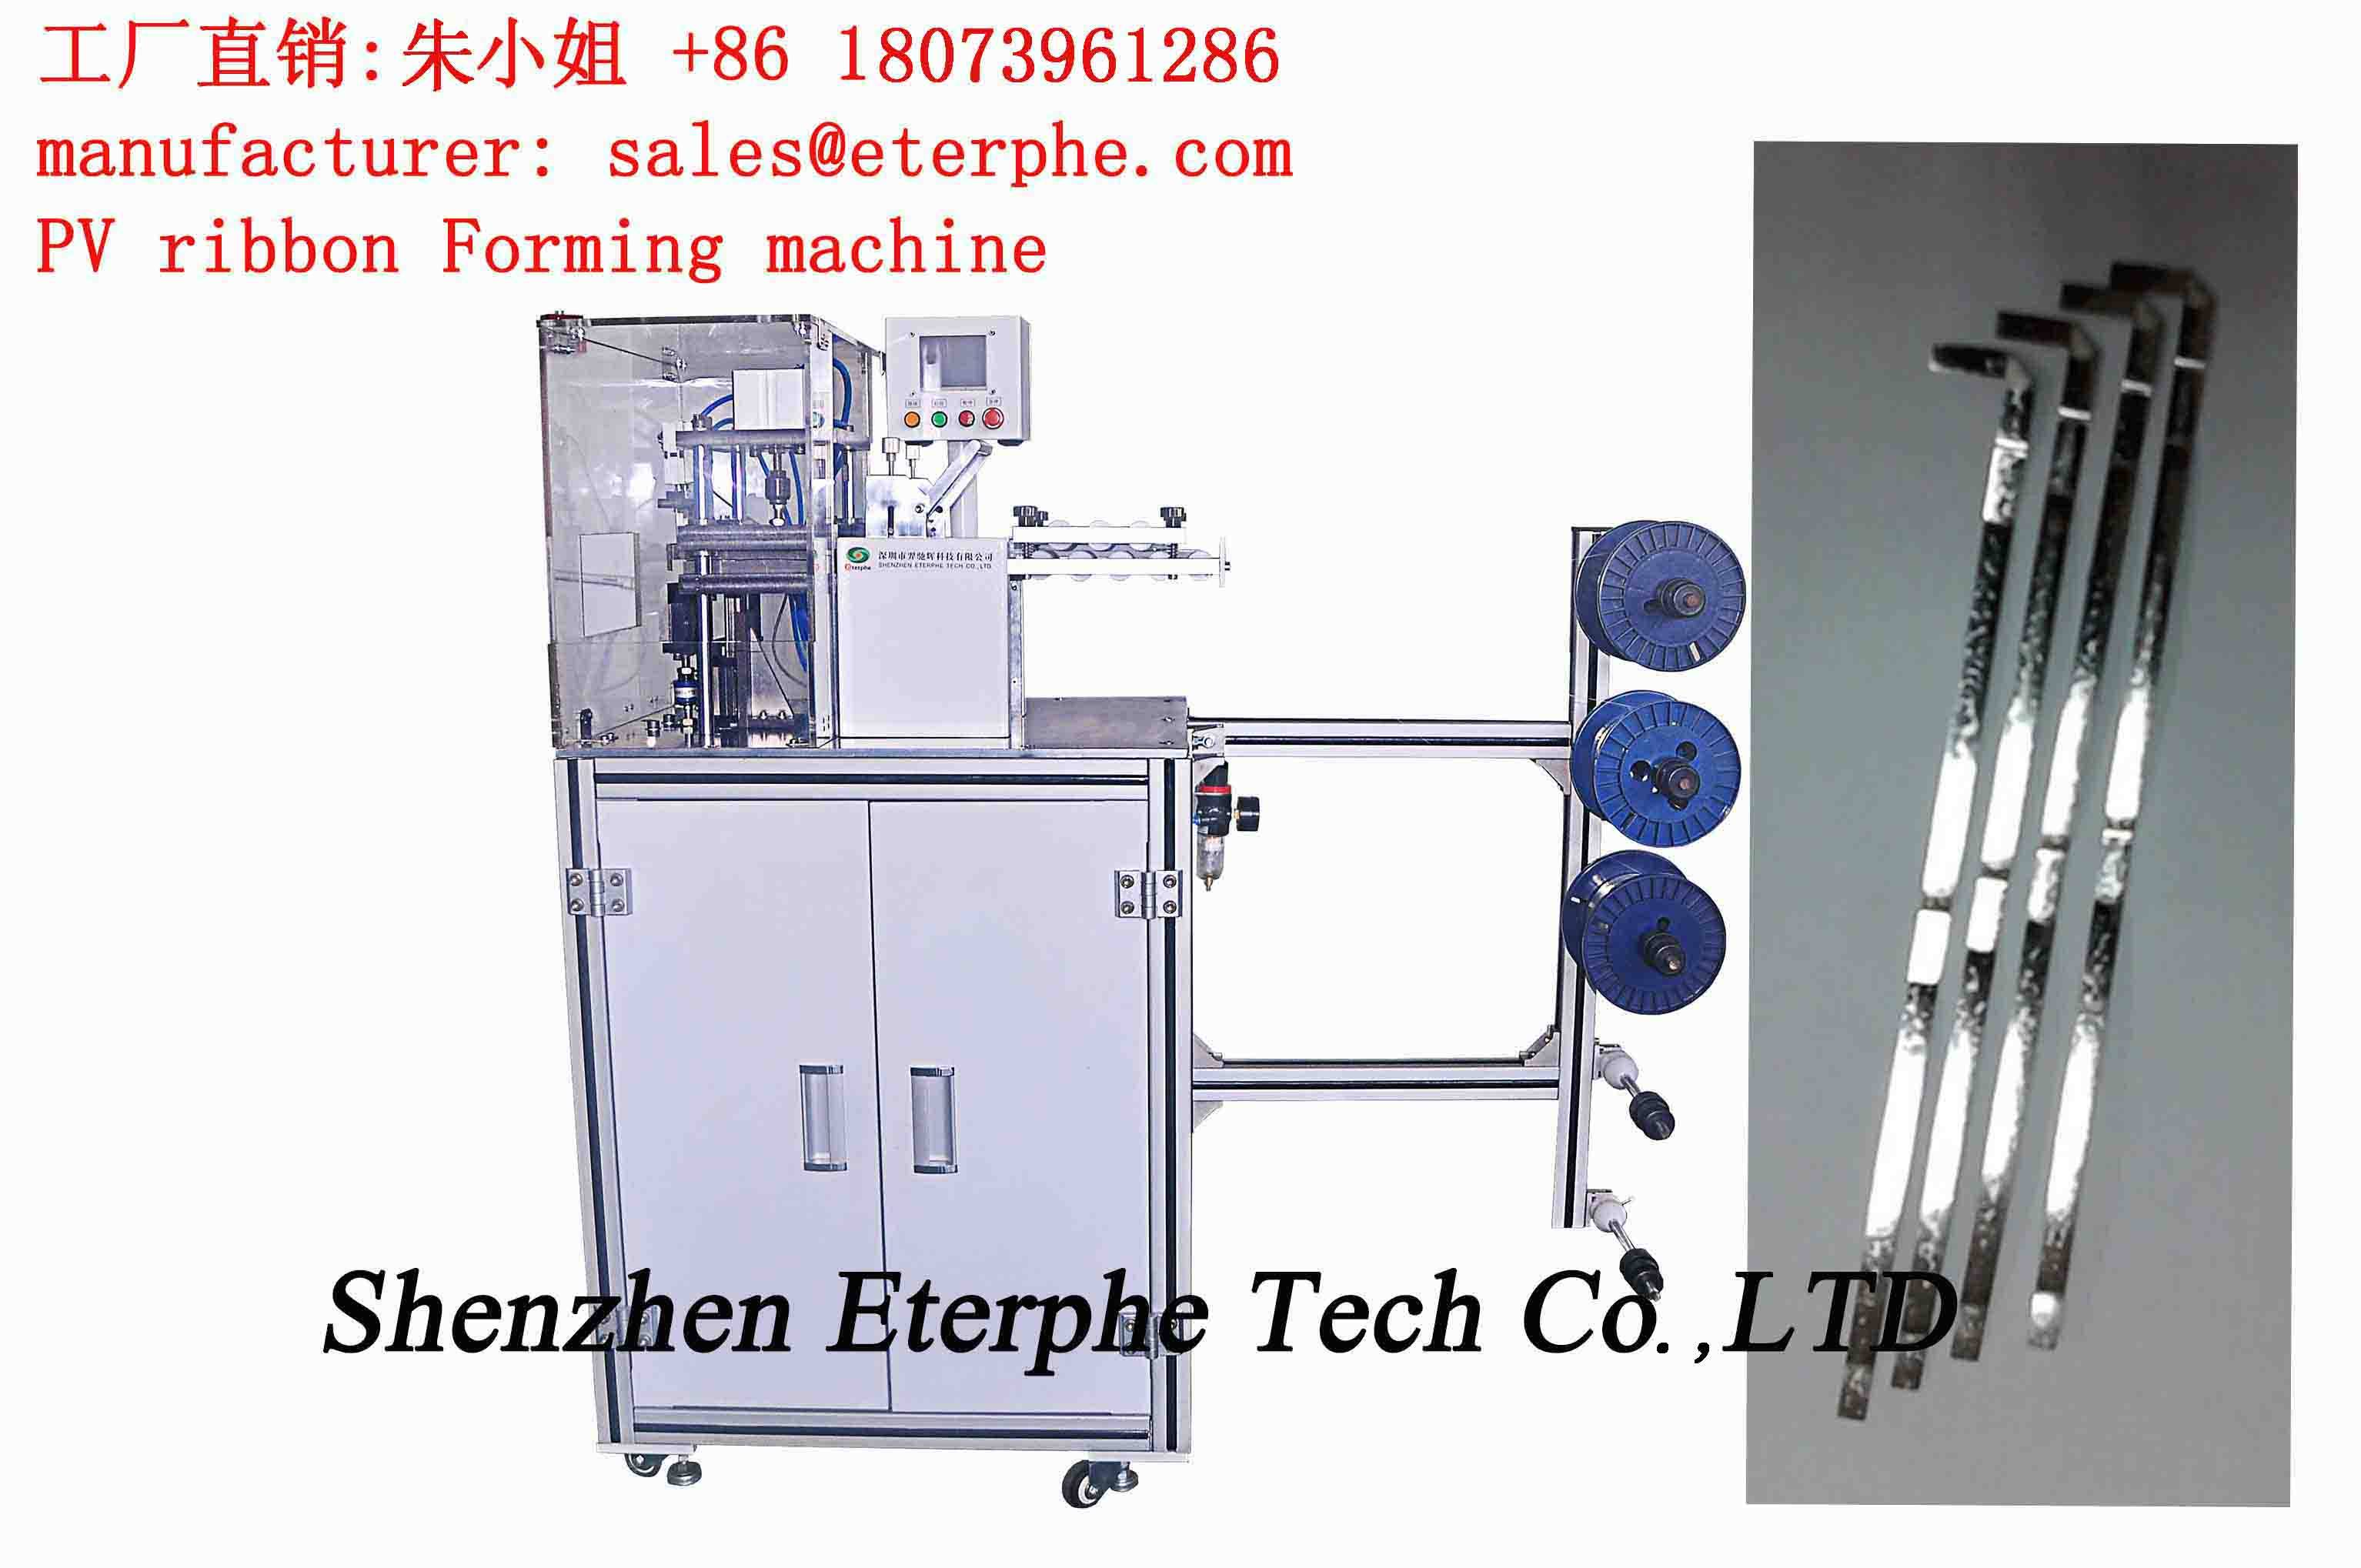 pv ribbon forming machine(all kinds)